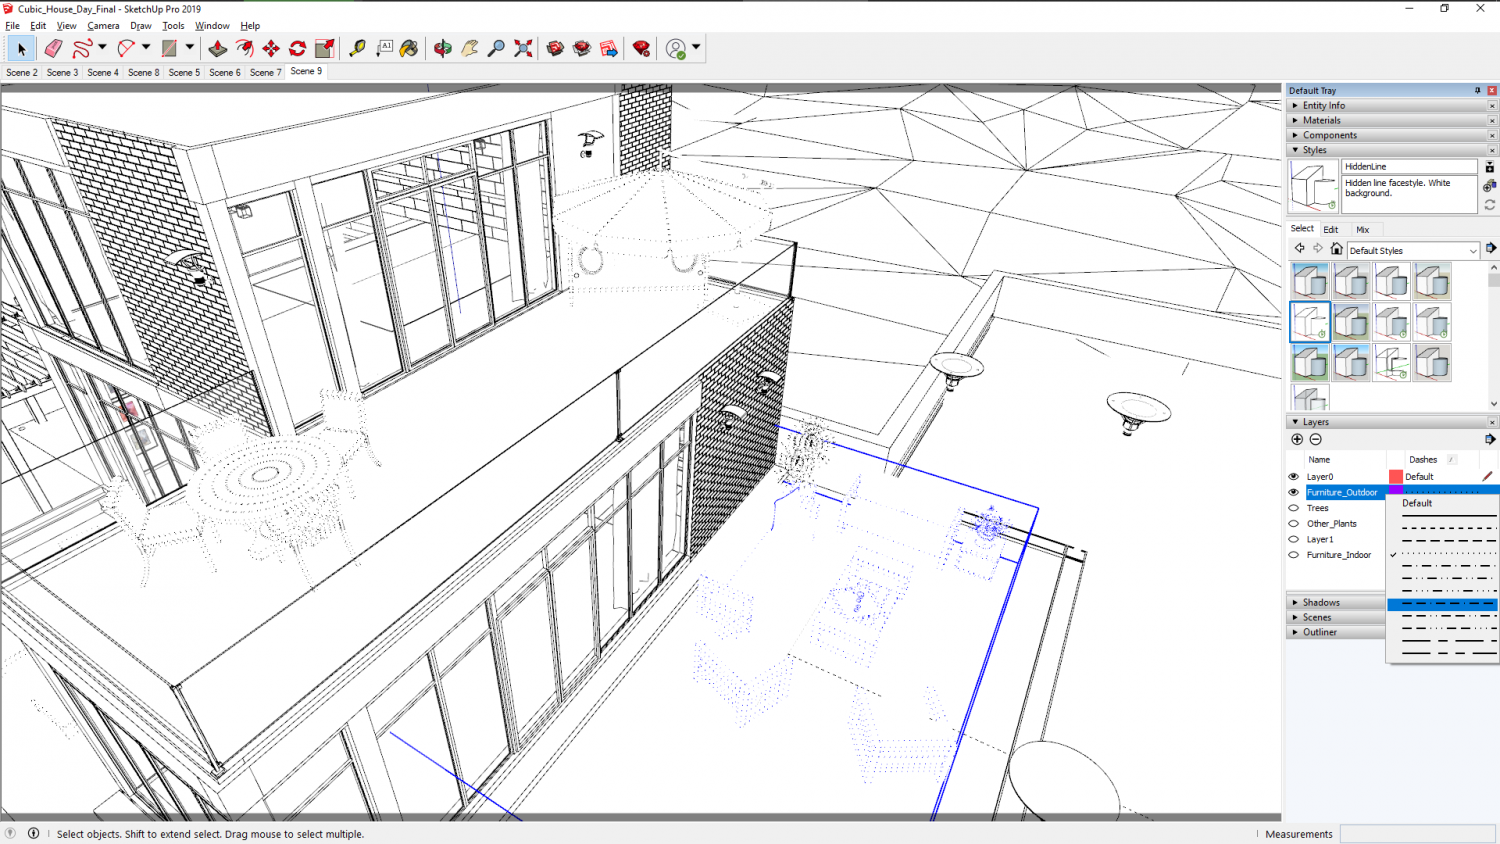 Modeling and Organization Tools in SketchUp 2019